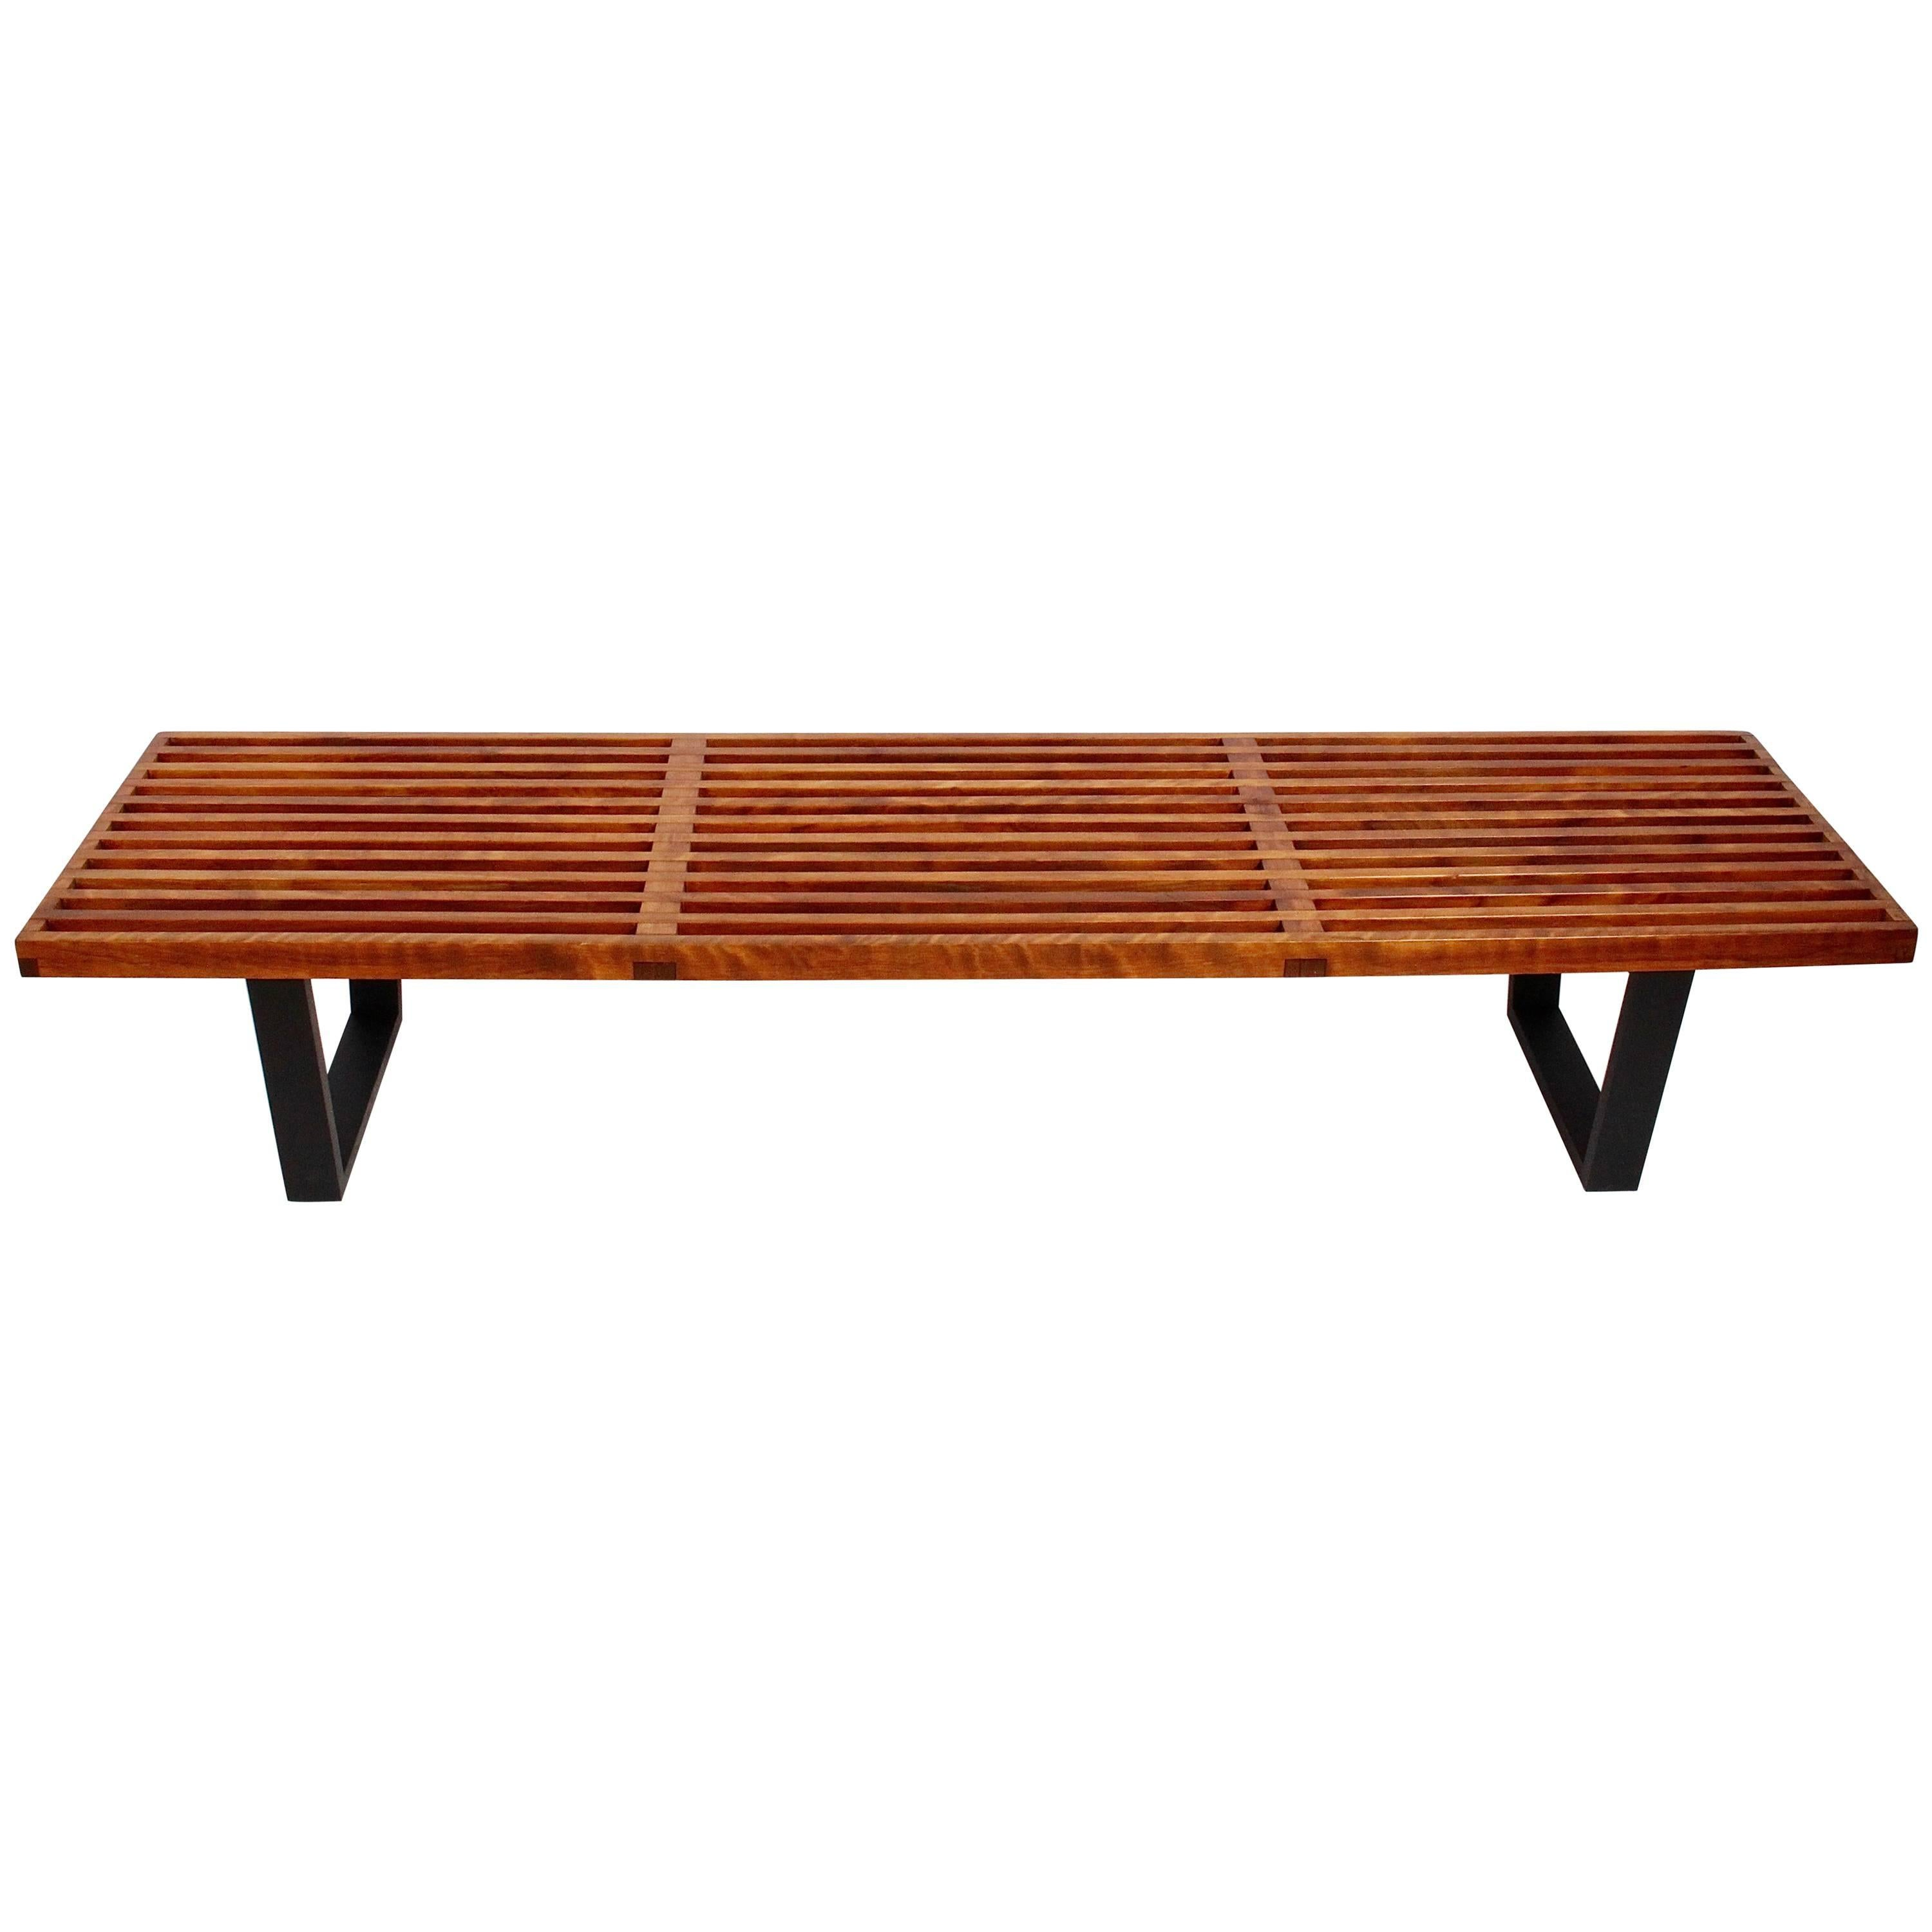 George Nelson For Herman Miller Maple Six Foot Bench Coffee Table, Circa  1960s